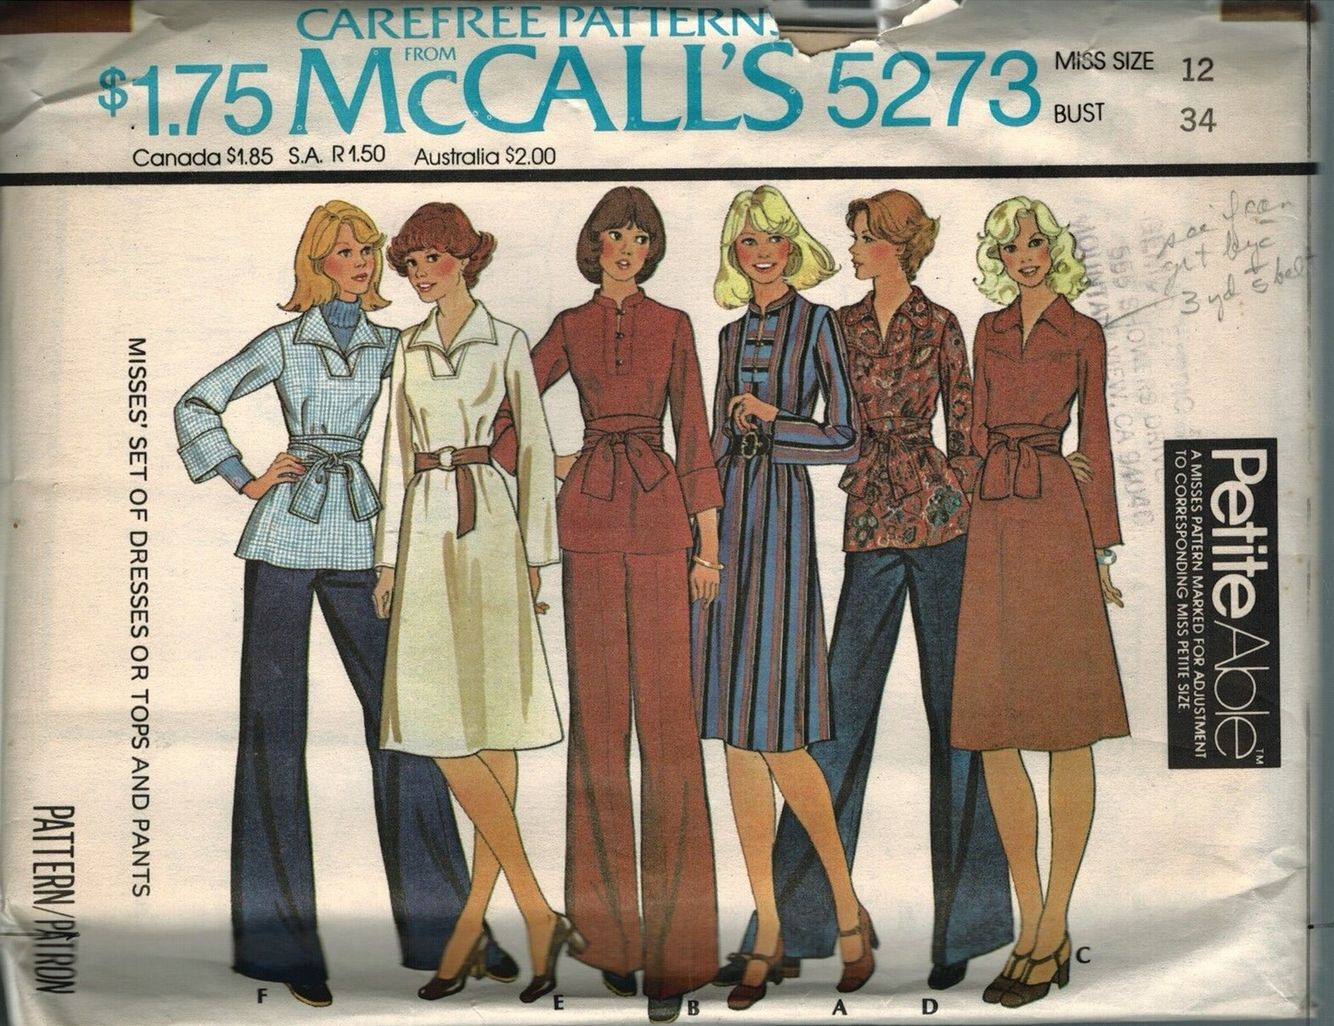 Mccall S S Separates